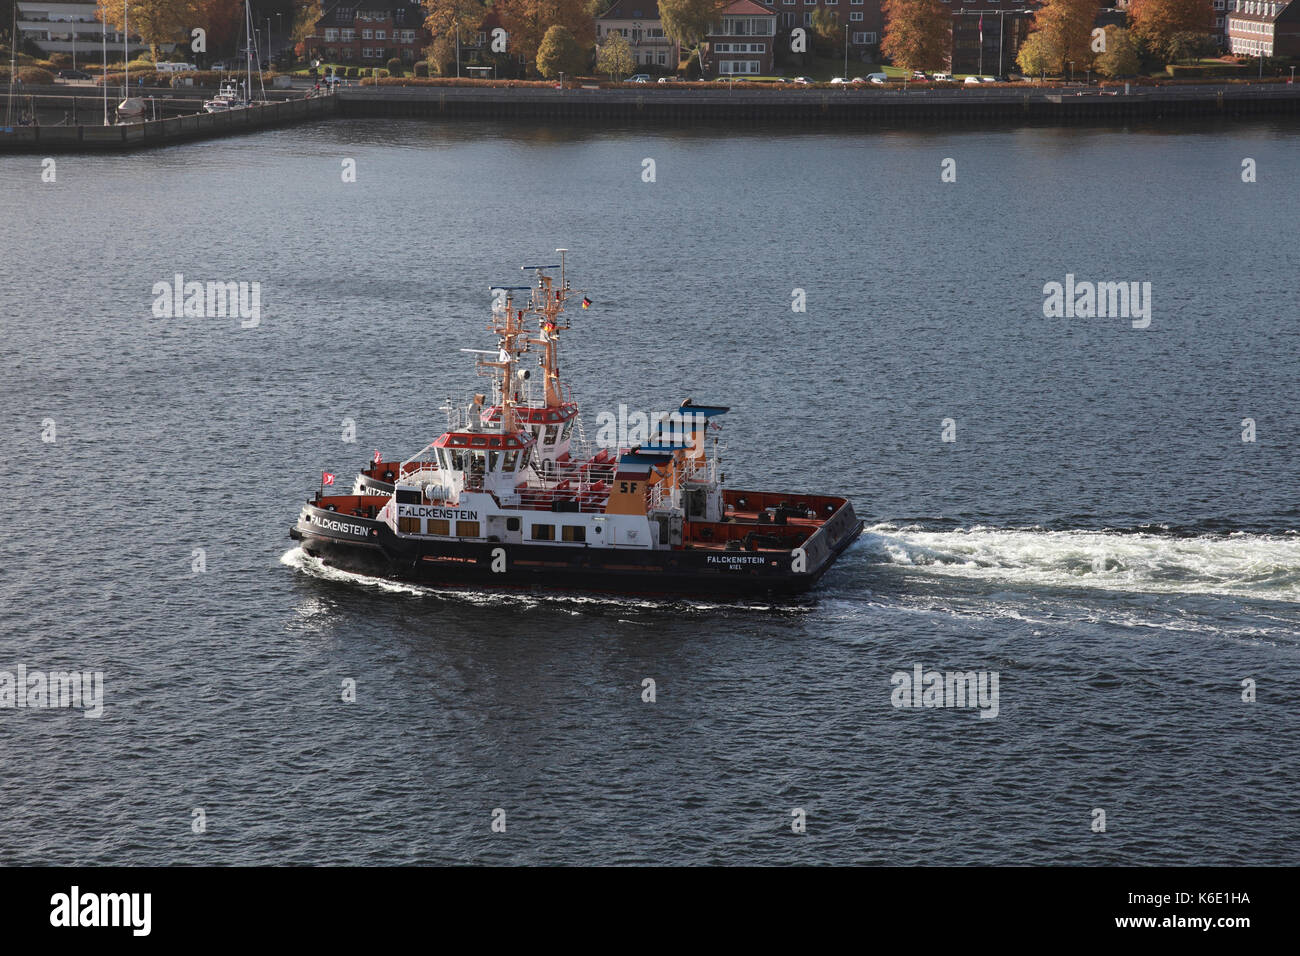 Tug boats Falckenstein and Kitzeberg entering the port of Kiel, northern Germany - Stock Image